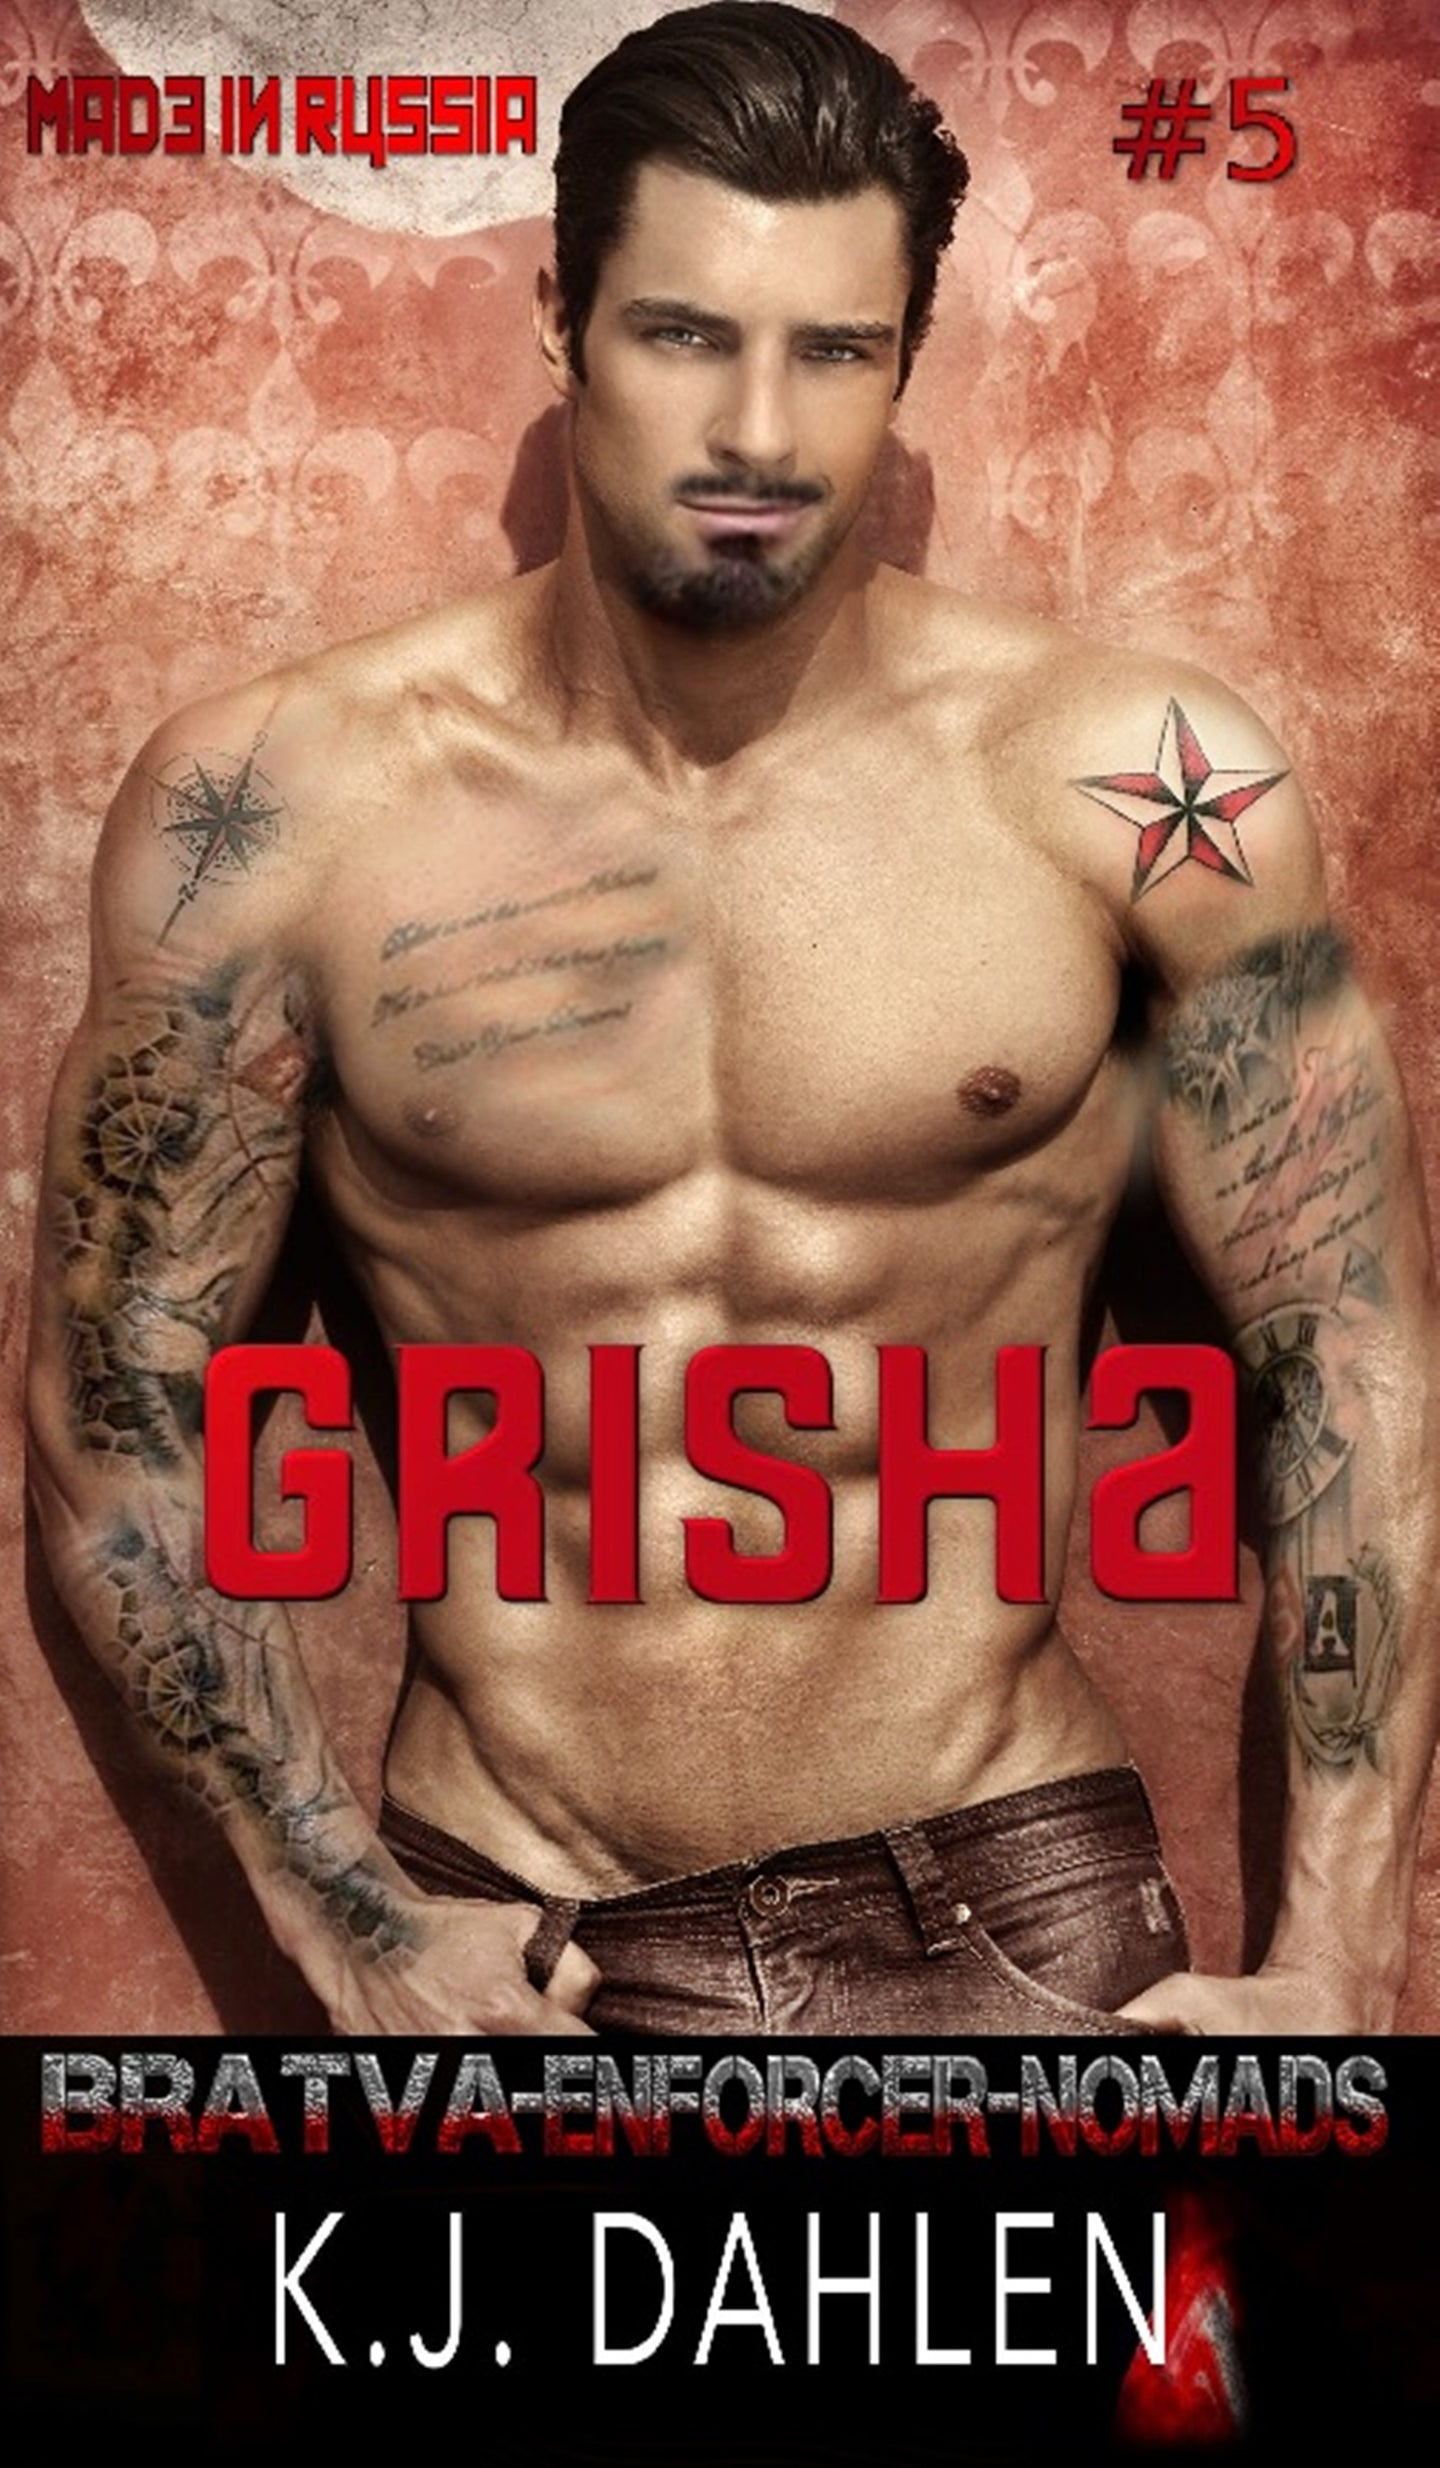 Grisha-Bratva-Enforcers-#5- Single